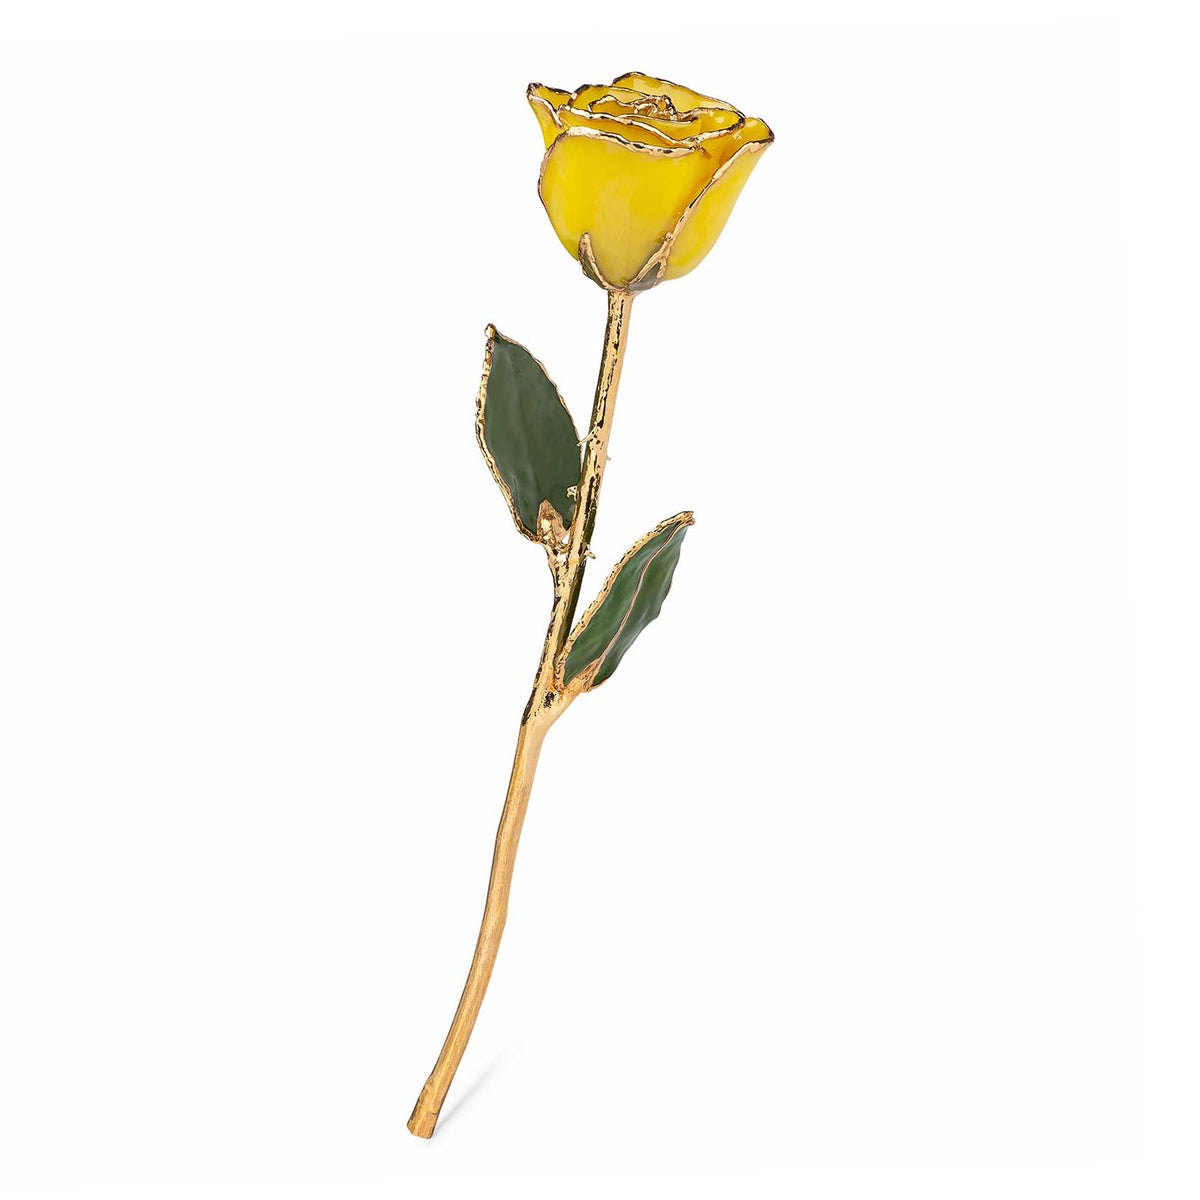 24K Gold Trimmed Forever Rose with Yellow Petals. View of Stem, Leaves, and Rose Petals and Showing Detail of Gold Trim